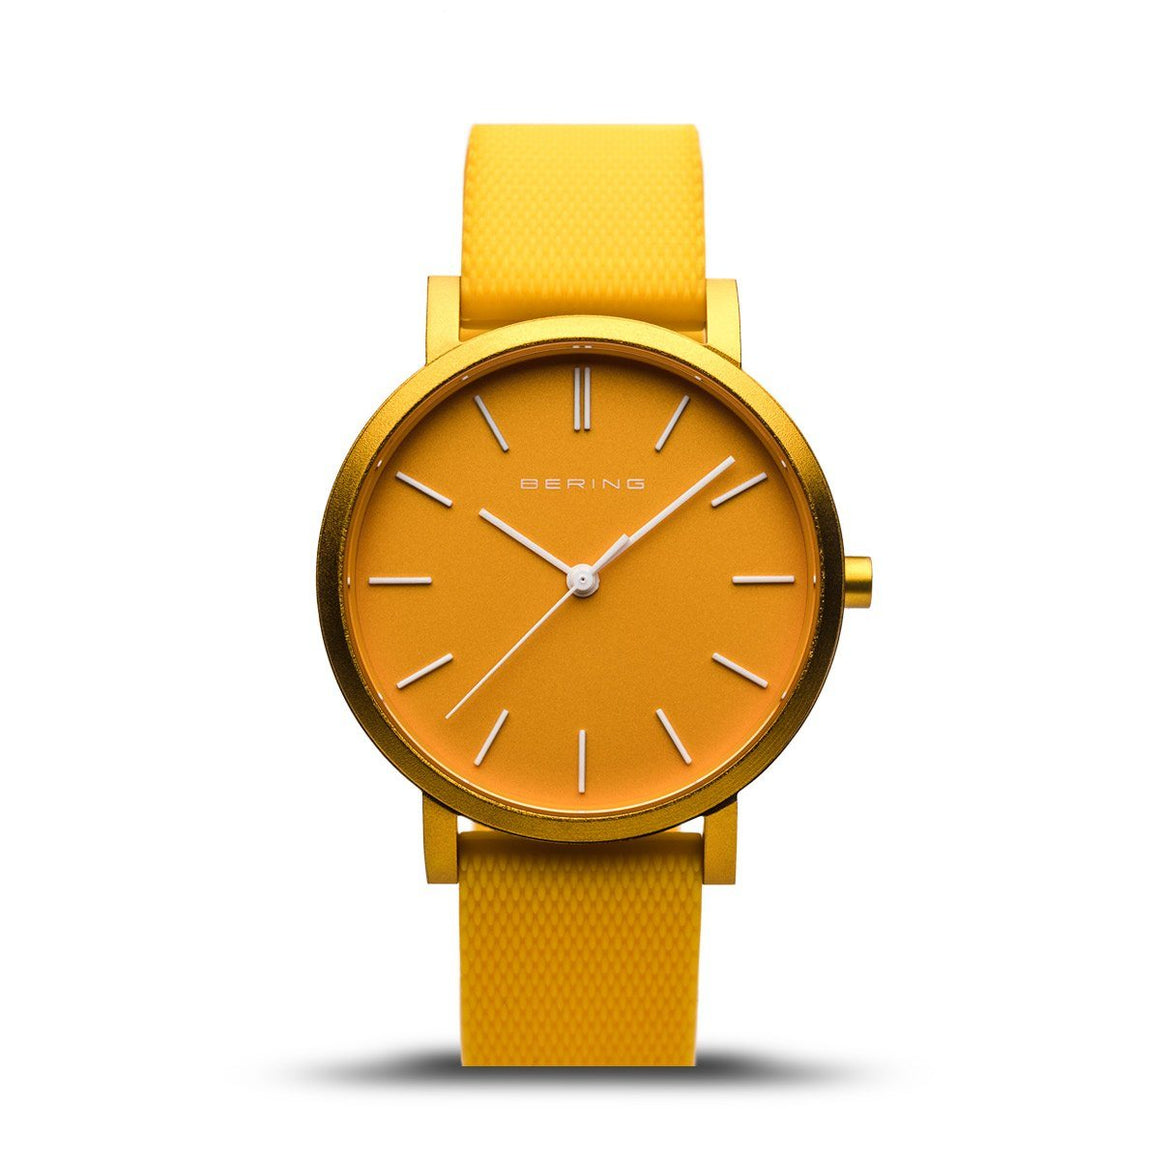 Matt yellow watch with white batons and hands on a yellow silicone mesh strap